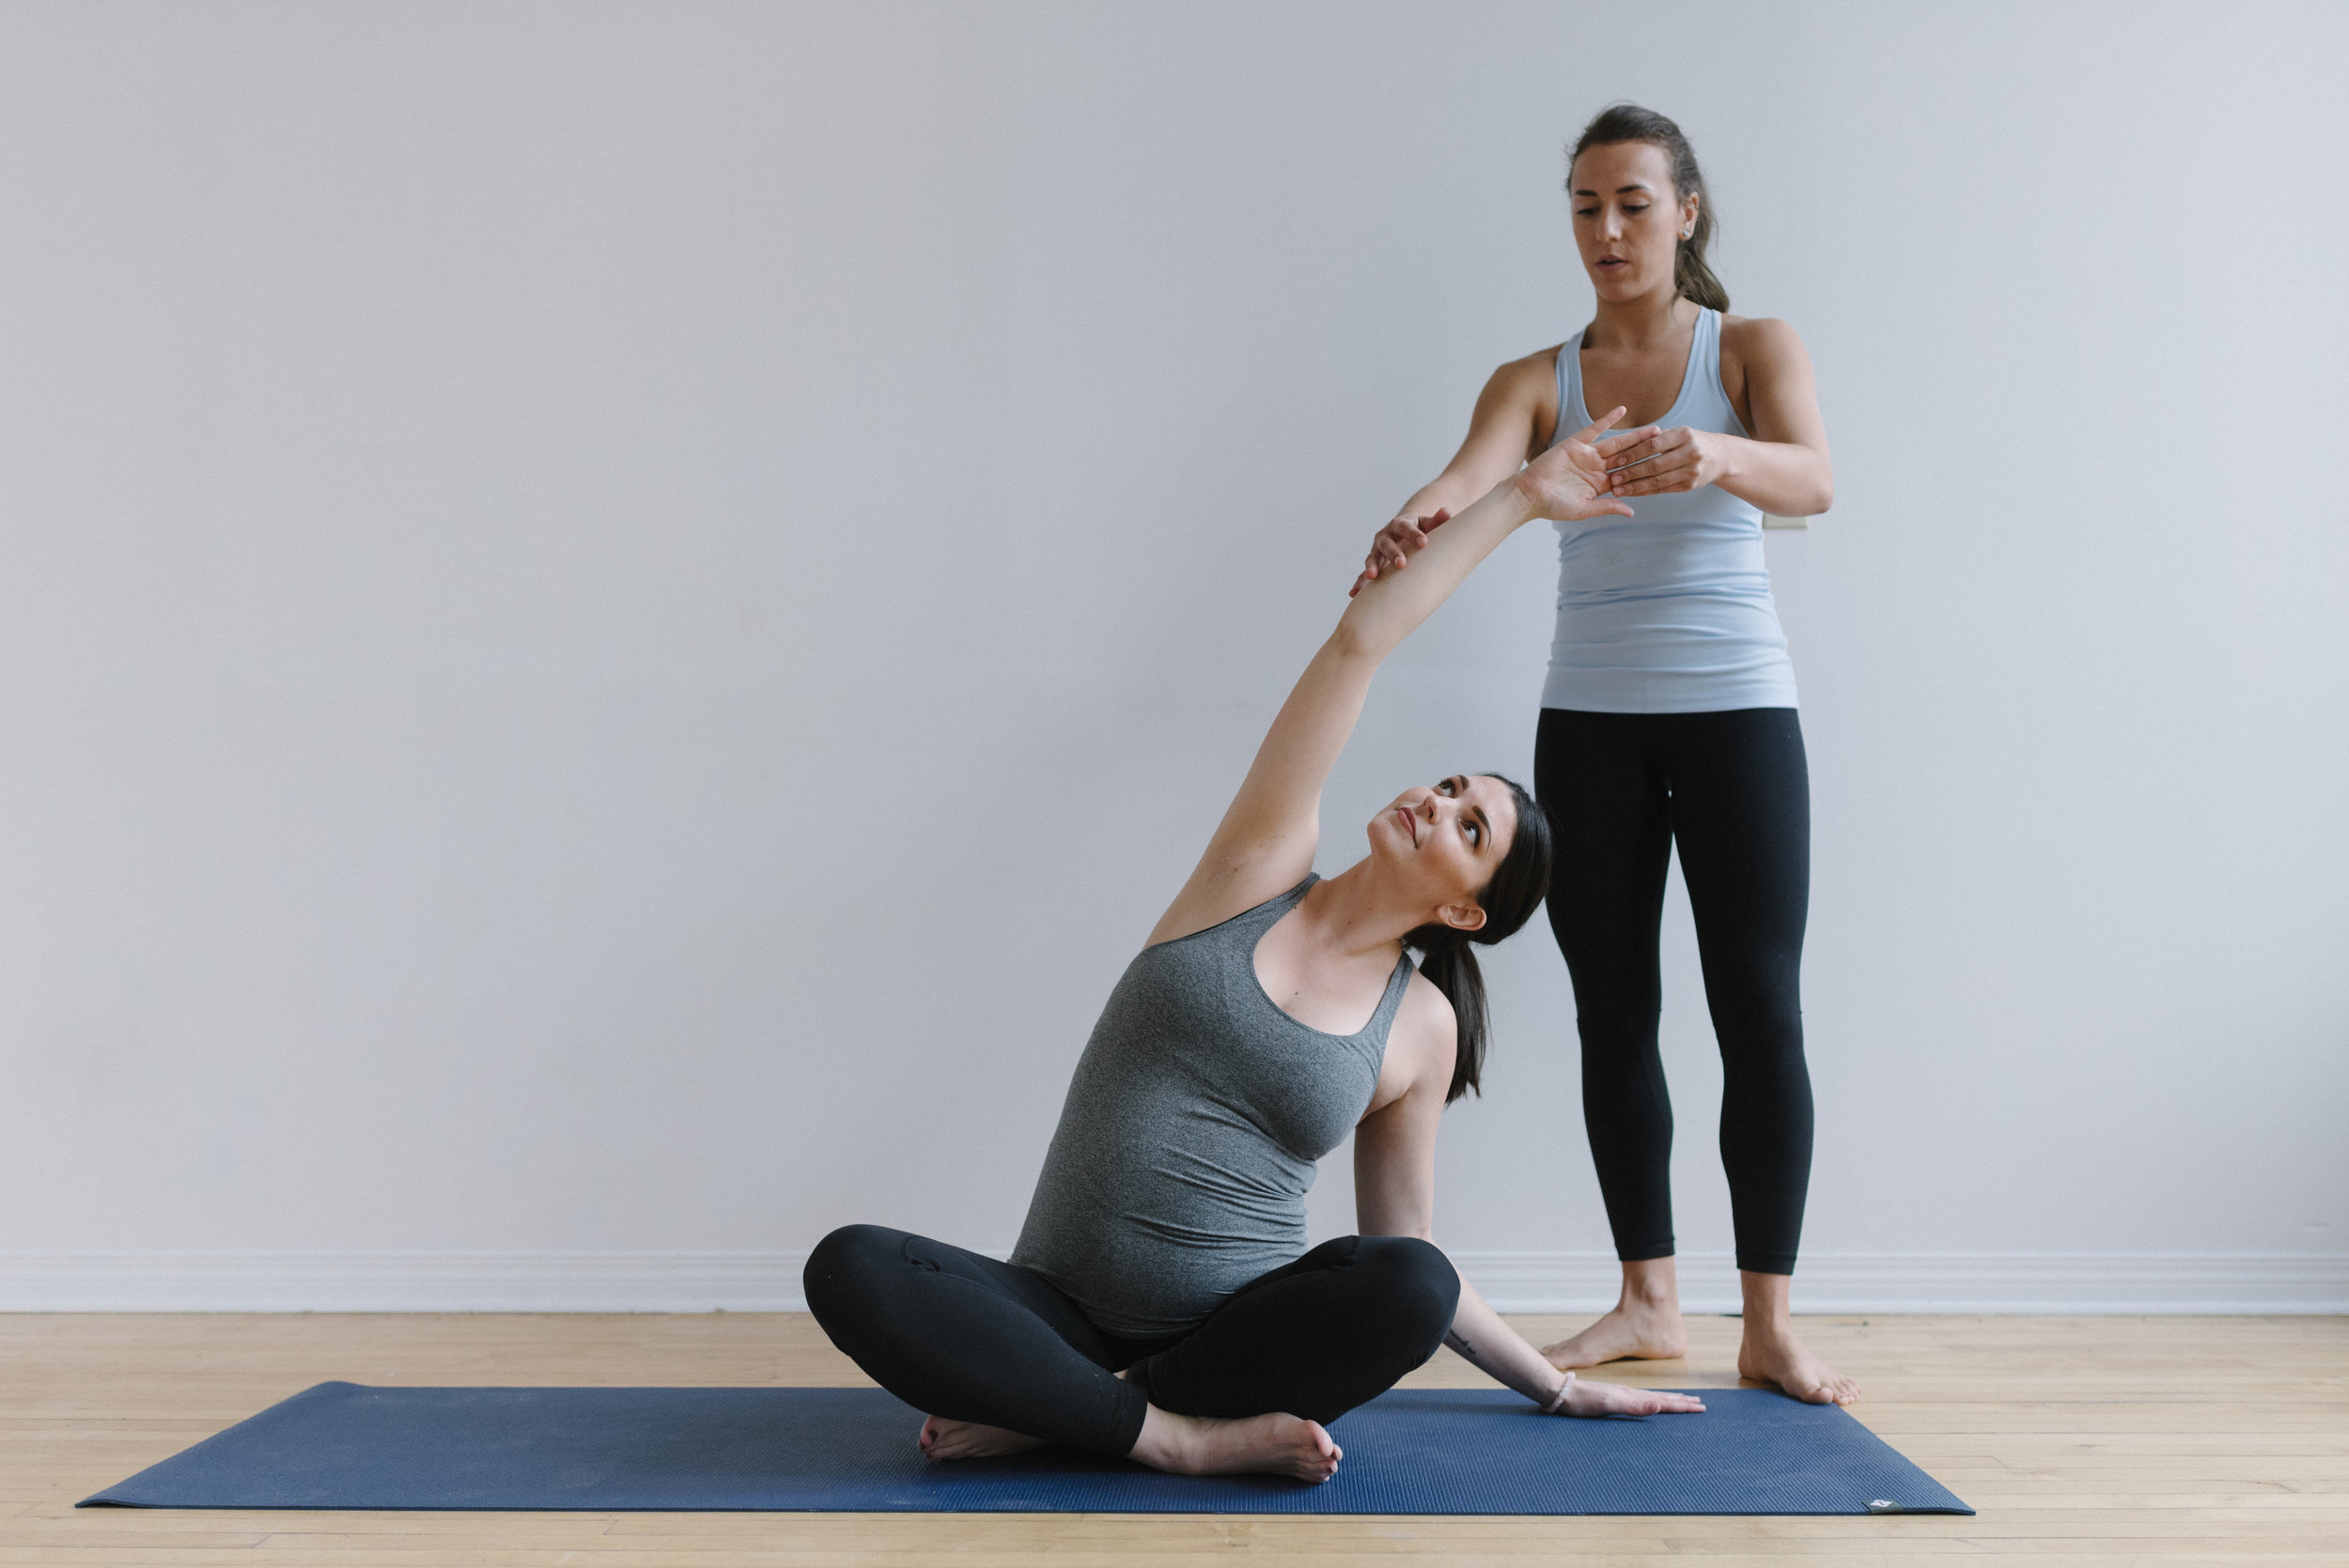 Prenatal+yoga+poses+for+every+trimester+_+Sam+D+Squire (8).jpeg